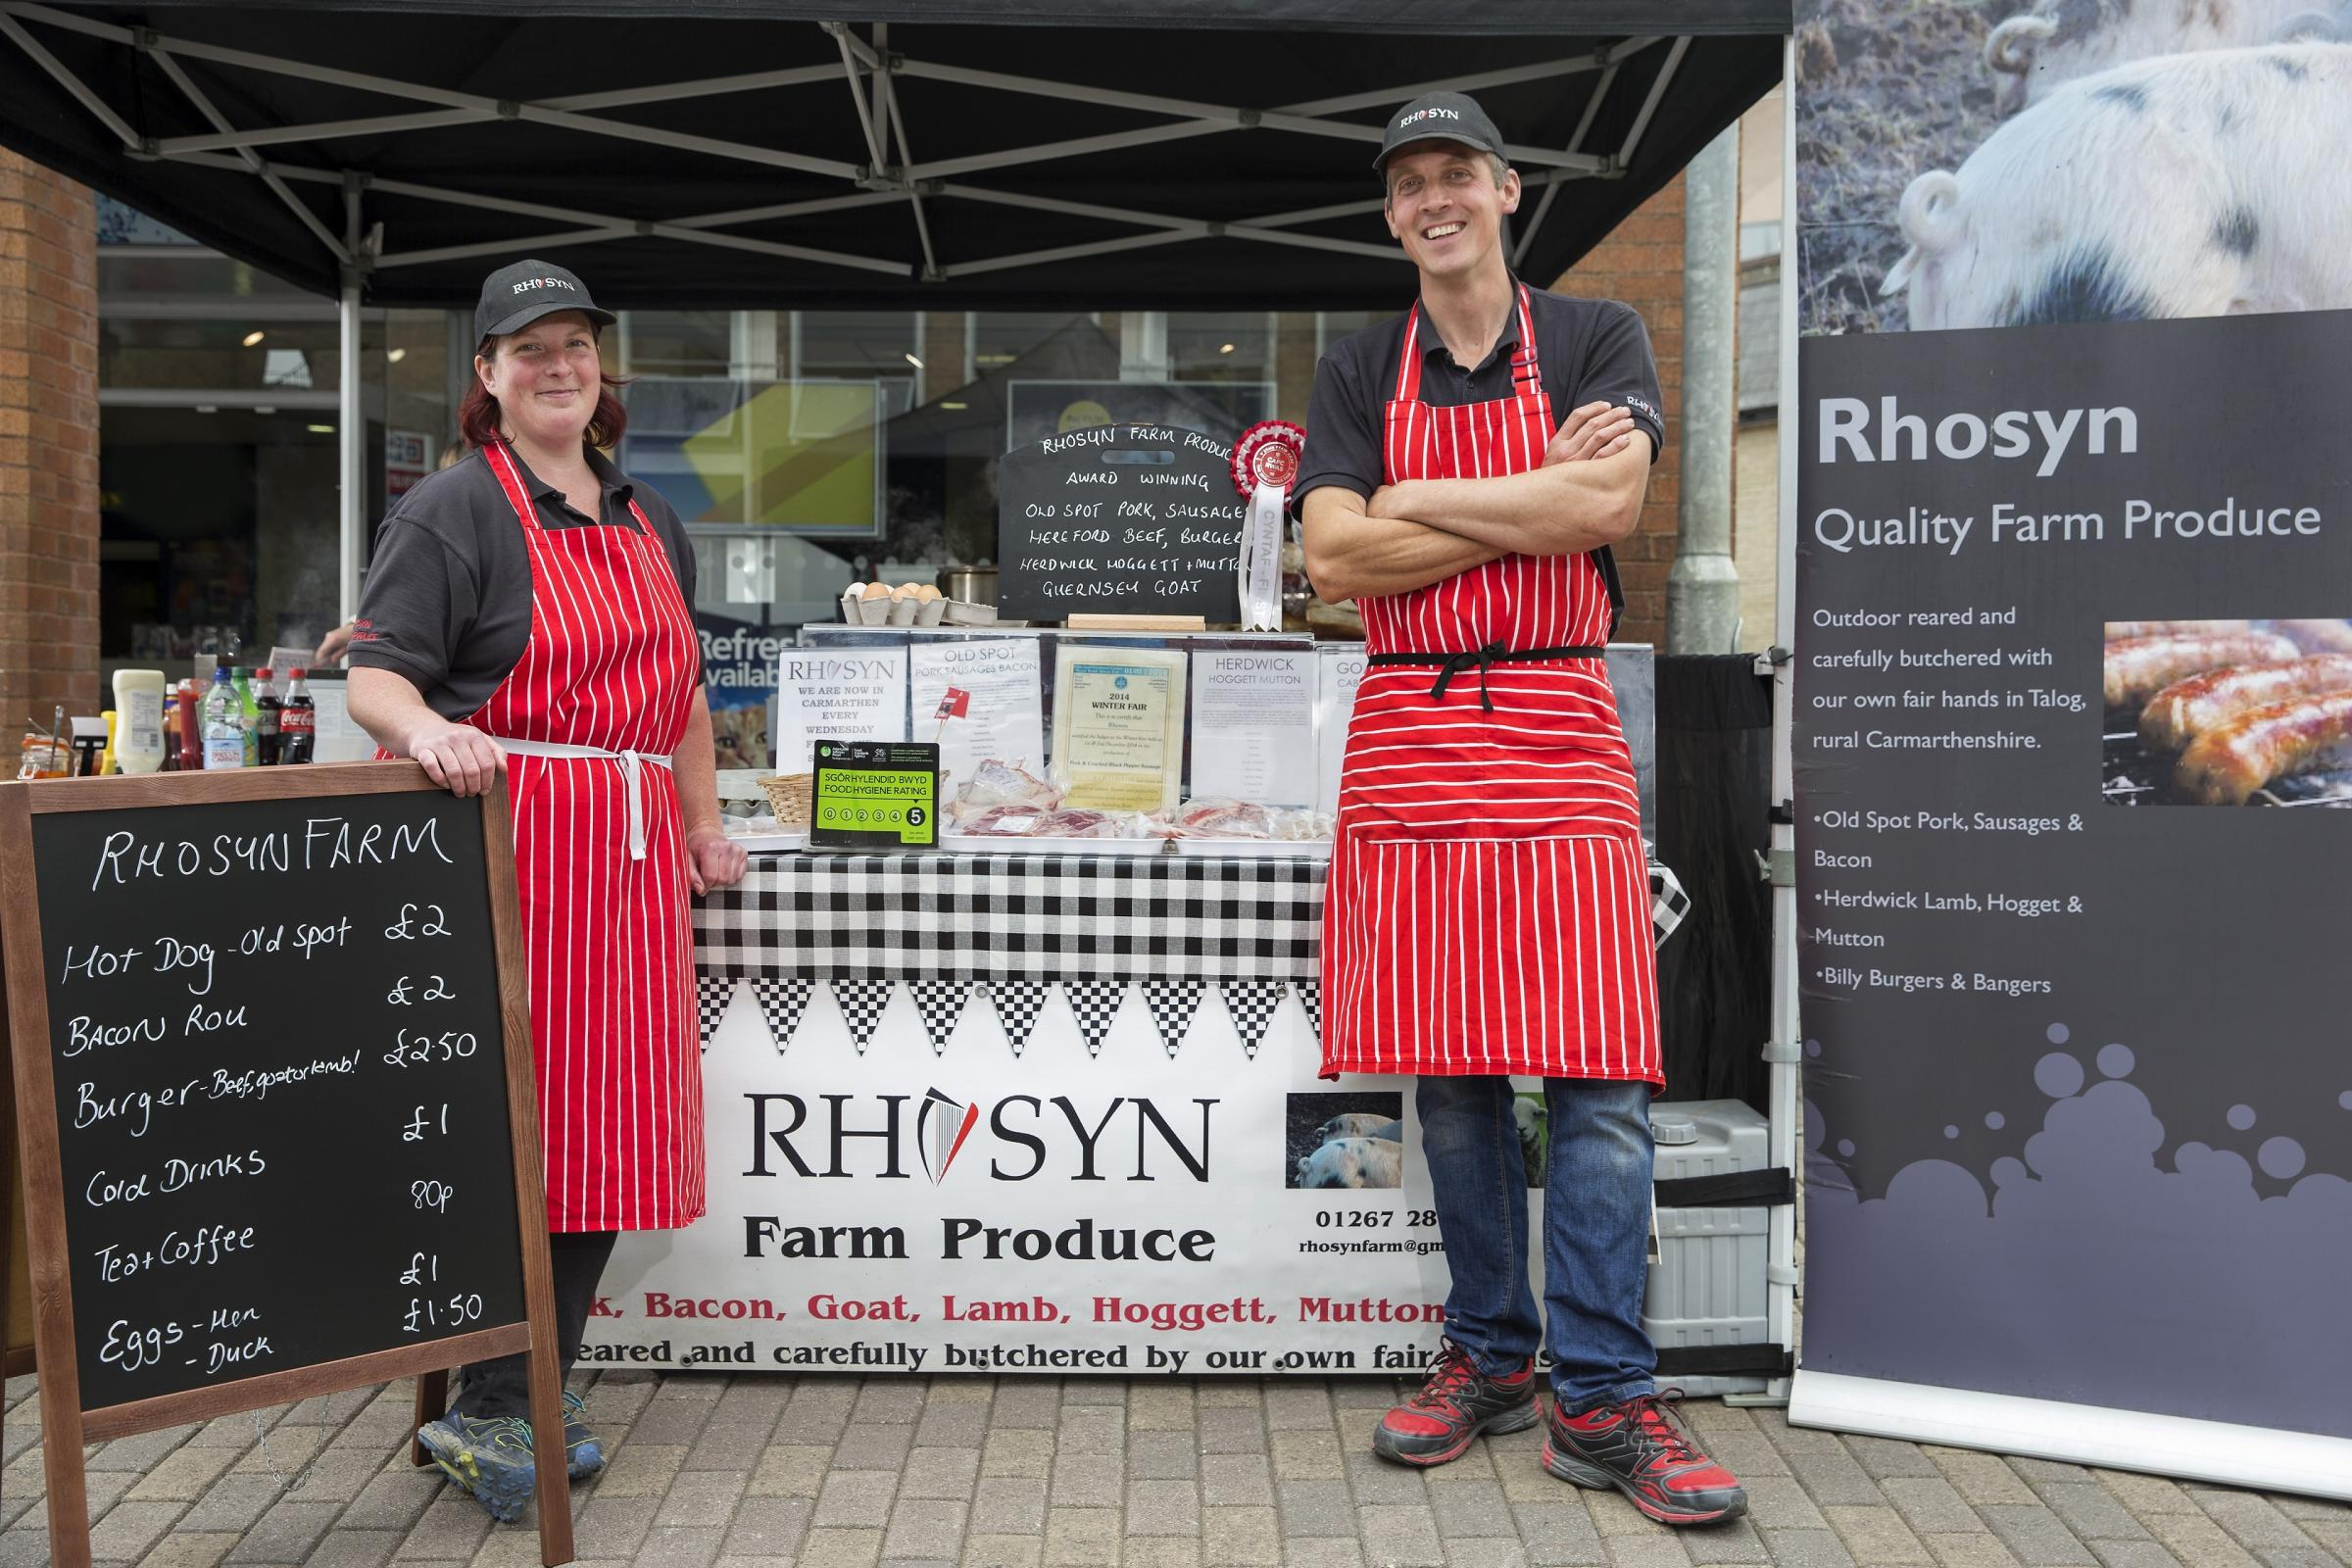 Emma and Neil Rose, owners of Rhosyn Farm PICTURE: Huw John